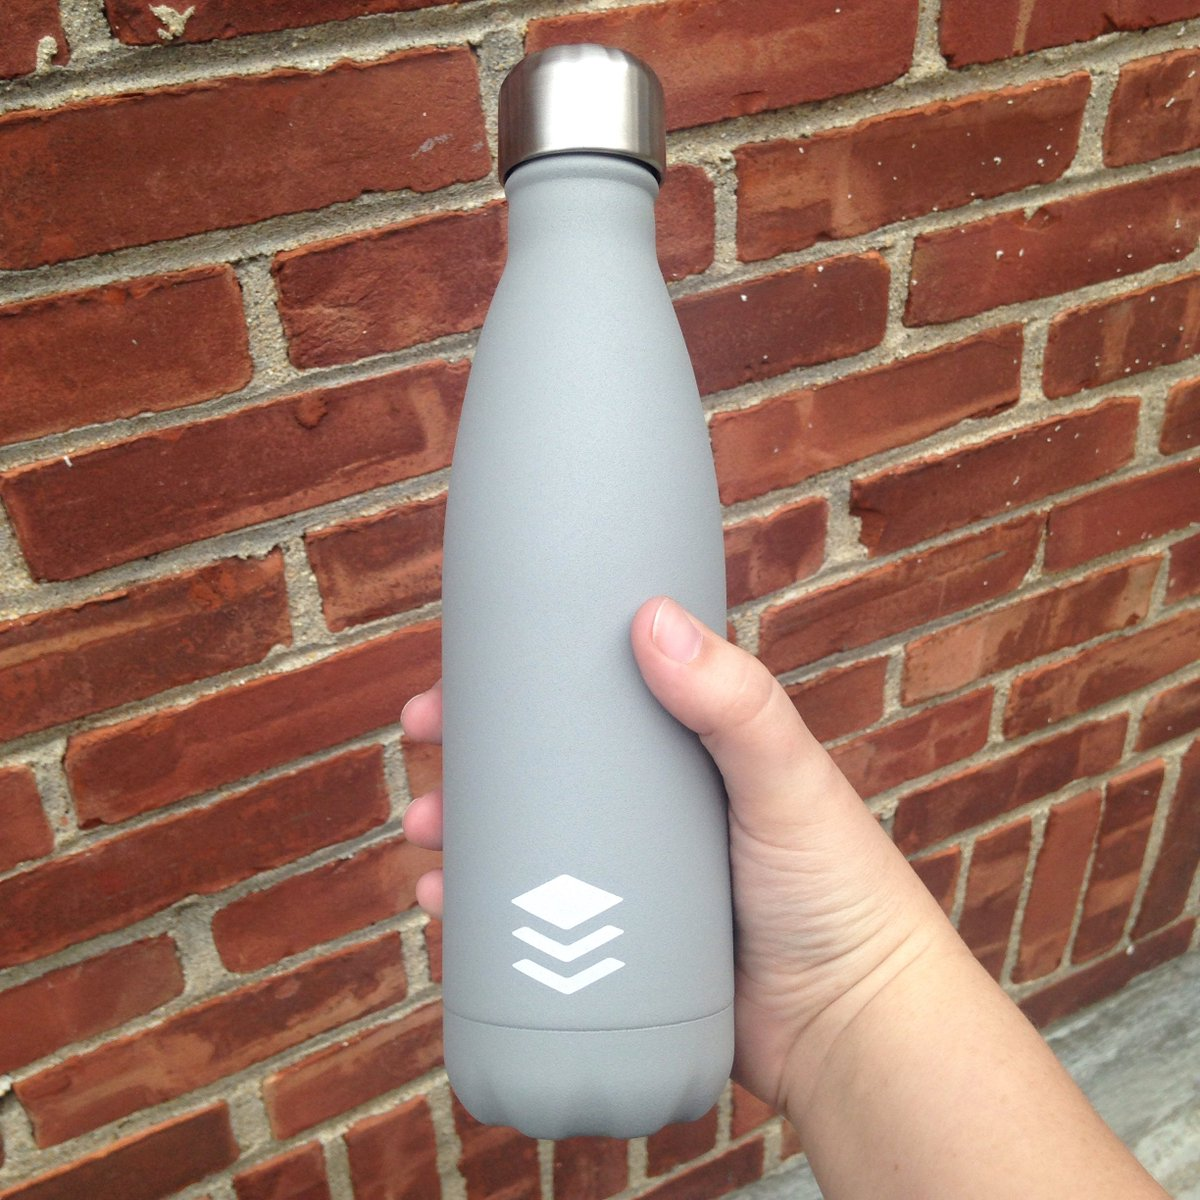 In celebration of 500K followers on Twitter, we're giving away a Buffer Water Bottle! Retweet this to enter!